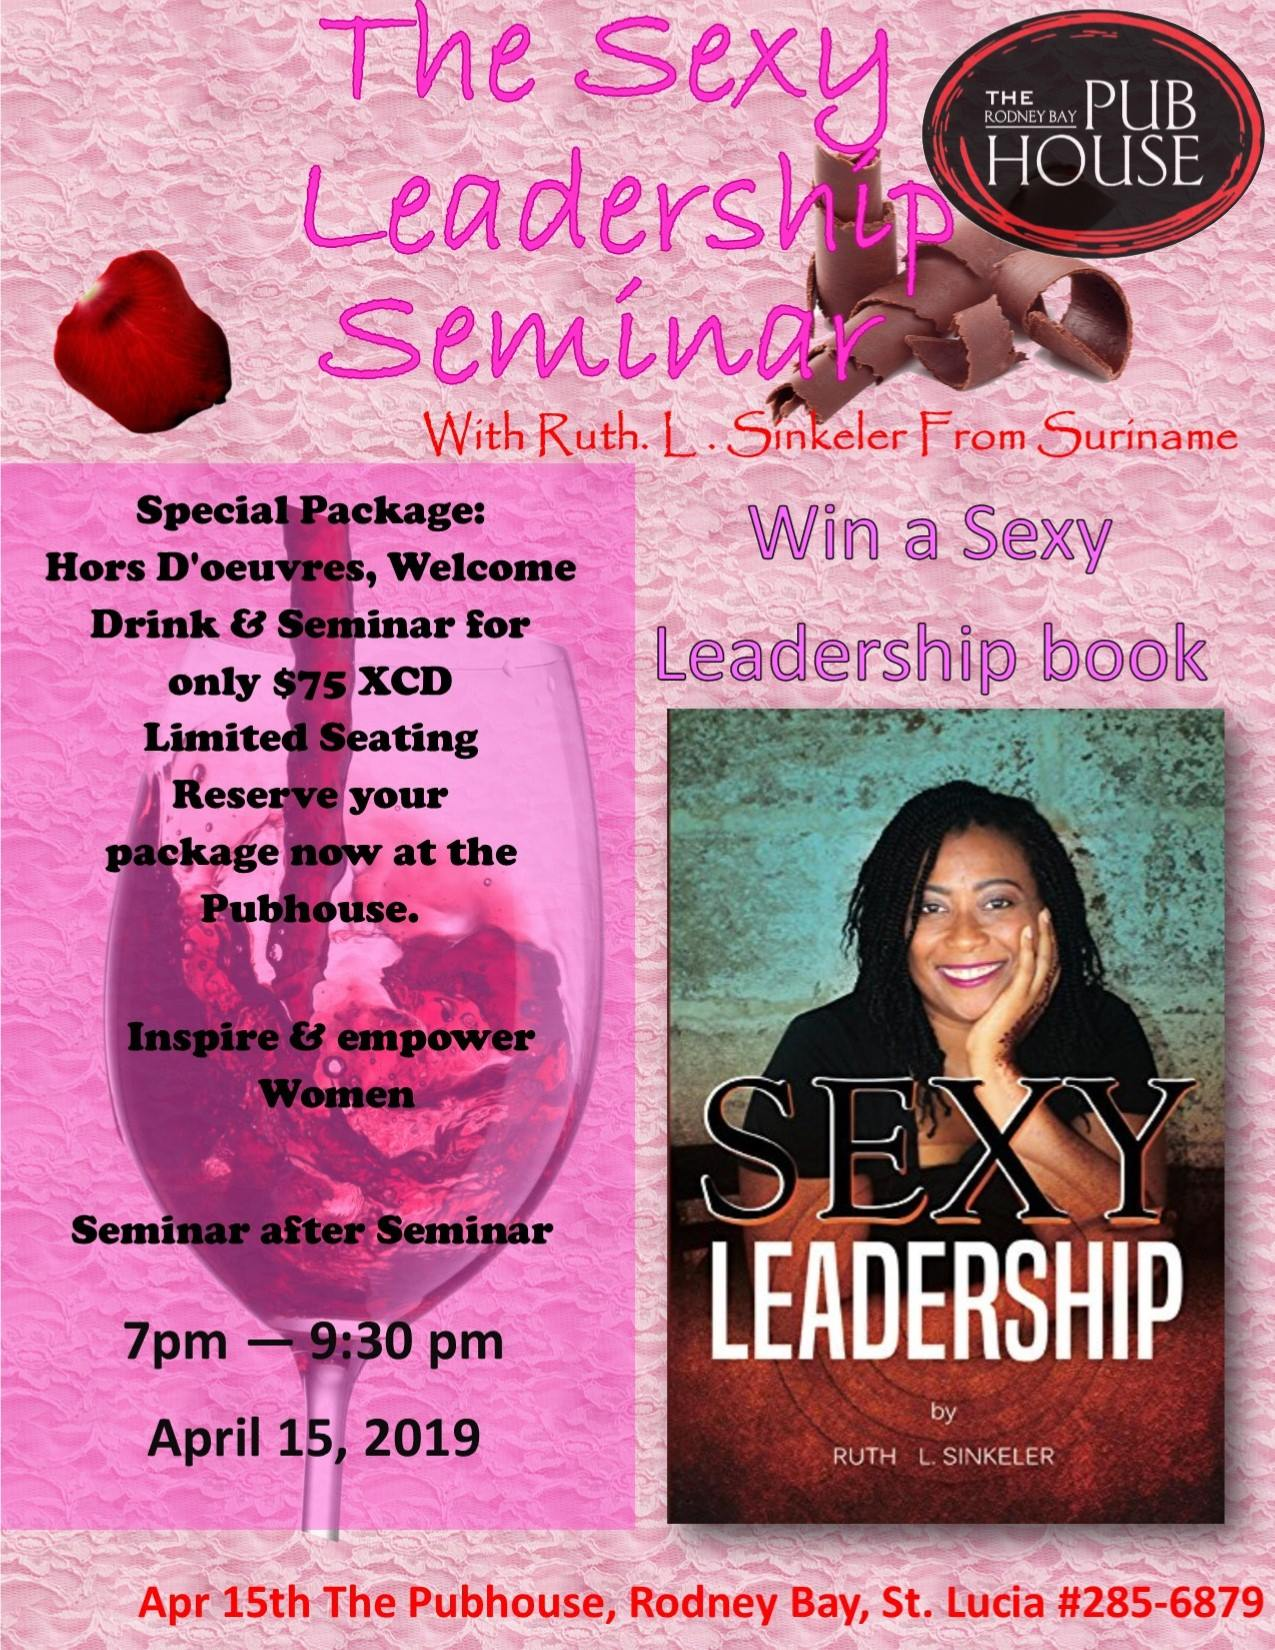 It's happening...... The Sexy Leadership Seminar, come be empowered. Reconnect to whom you authentically are and what you have to offer the world